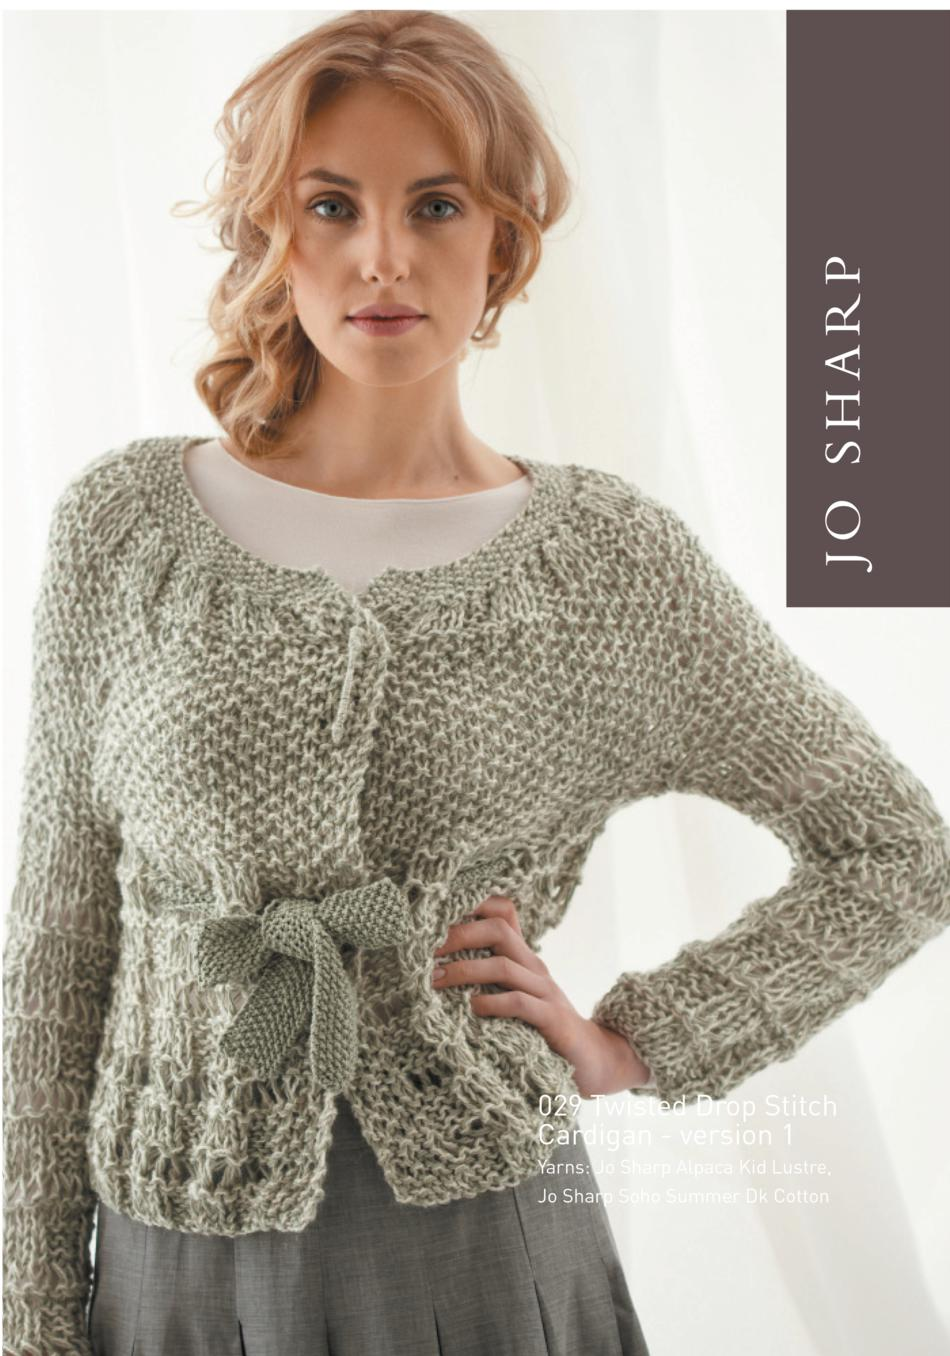 Jo sharp drop stitch vest and cardigan pattern knitting pattern knitting patterns jo sharp drop stitch vest and cardigan pattern bankloansurffo Images